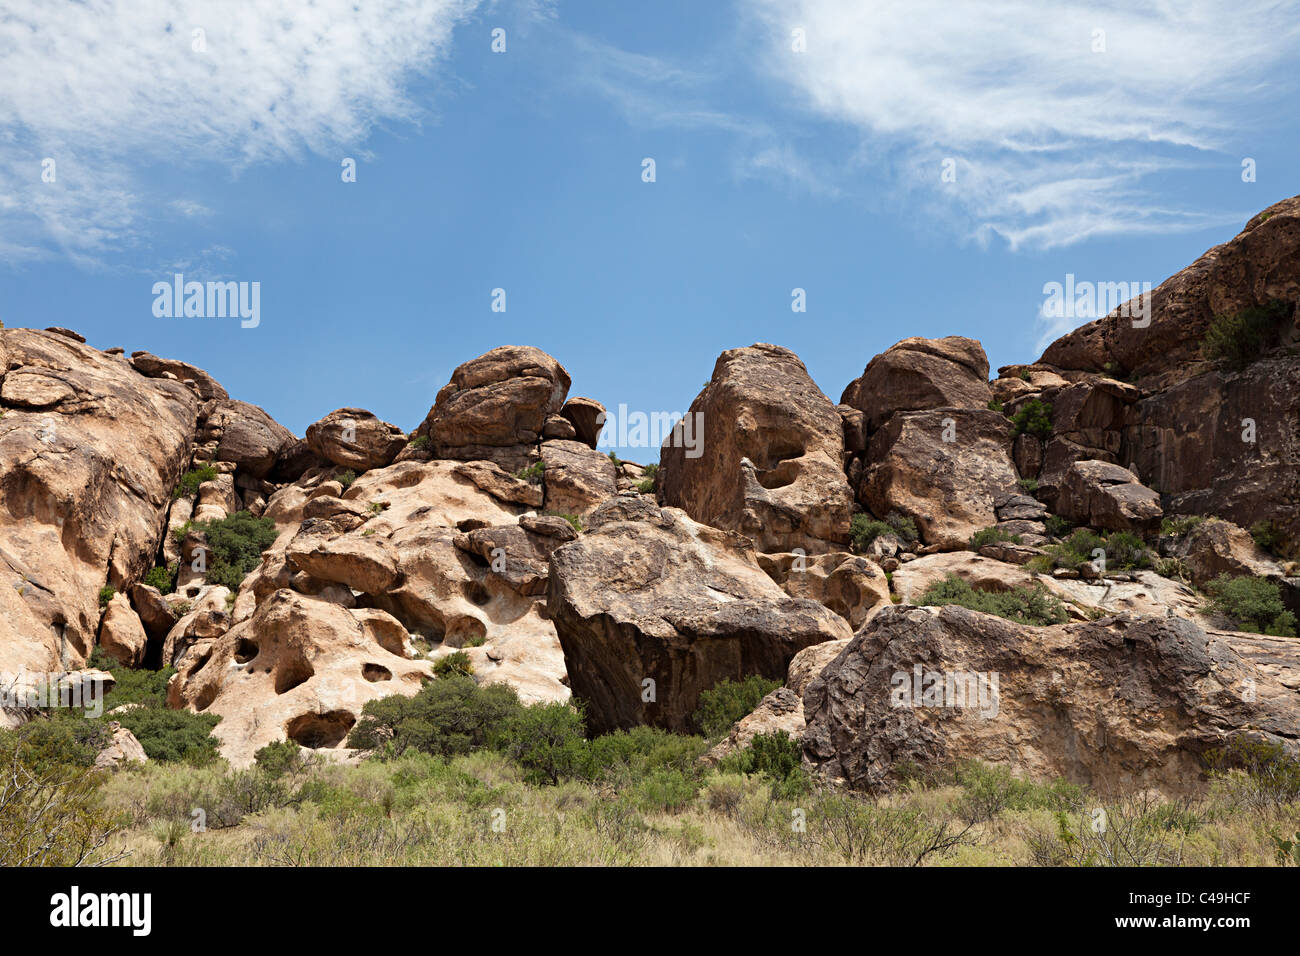 Desert boulders and terrain Hueco Tanks State Historic Site Texas USA - Stock Image